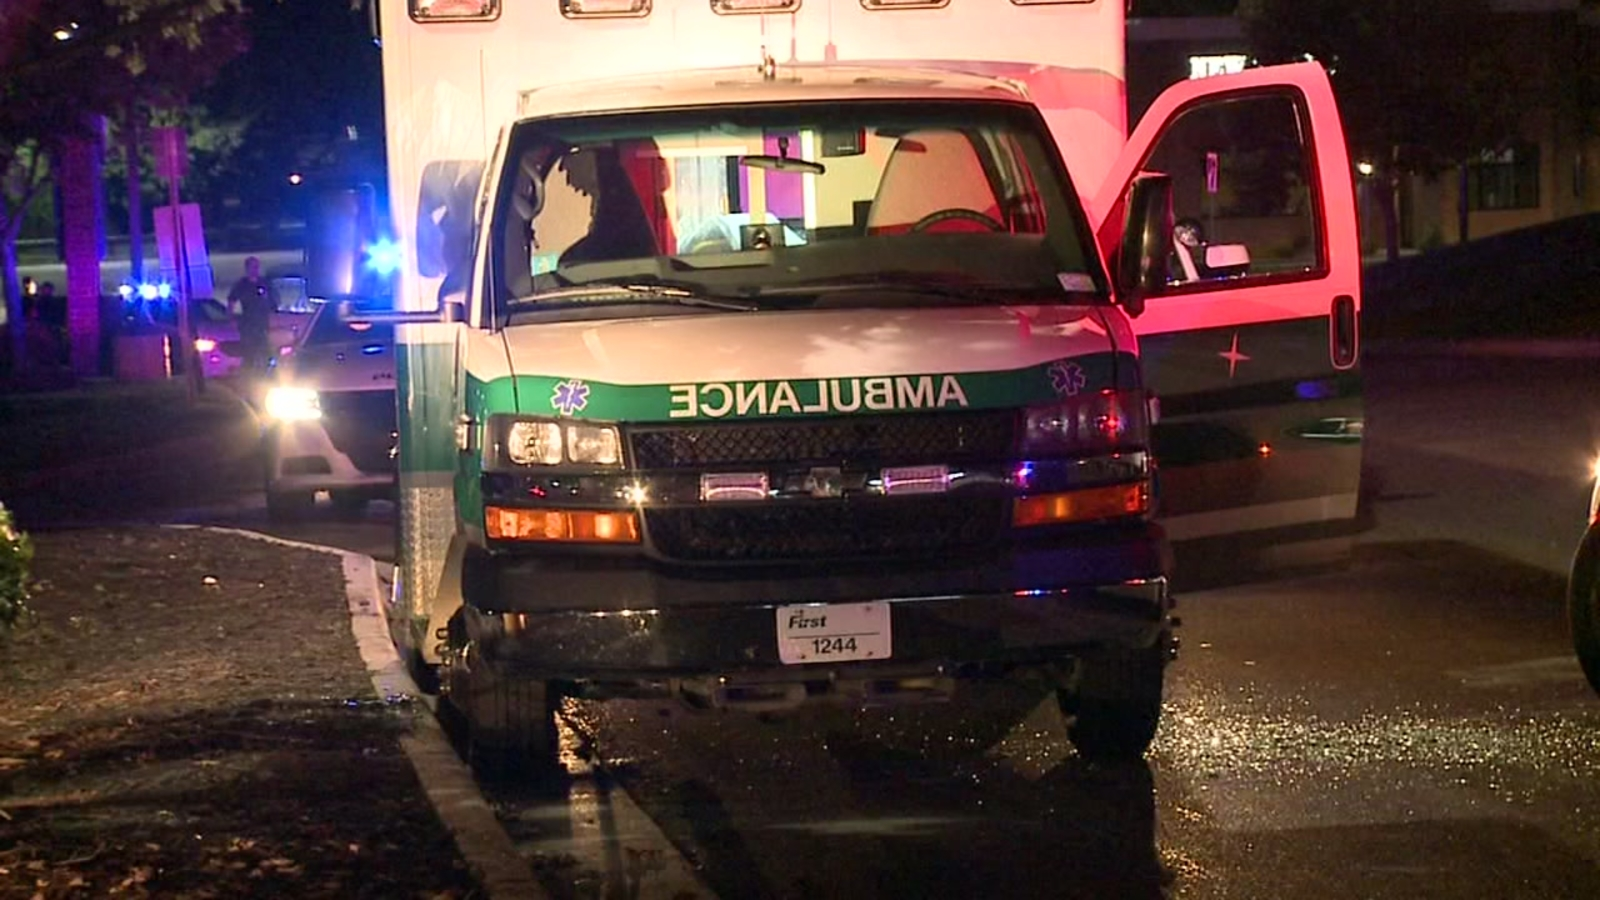 Patient Caught After Stealing Ambulance Outside Unc